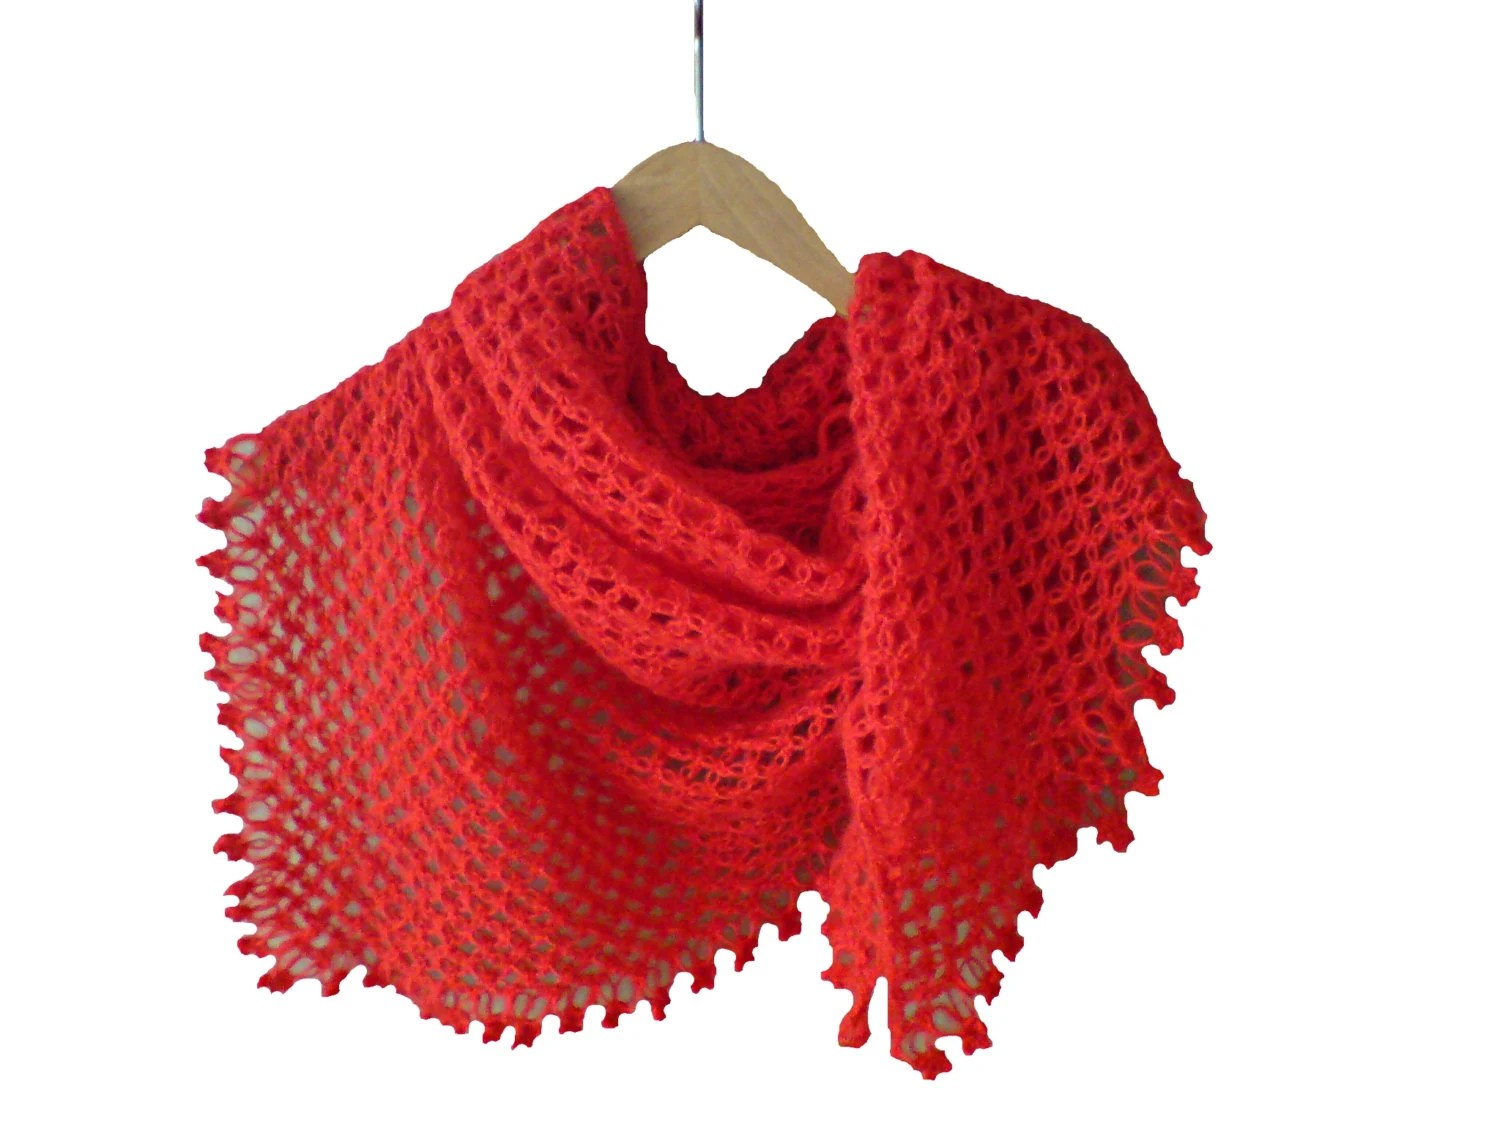 Shawl, crochet shawl for women, handmade, made of mohair. Ready to ship: Red, Green, Purple, Pink, Blue - woolopia